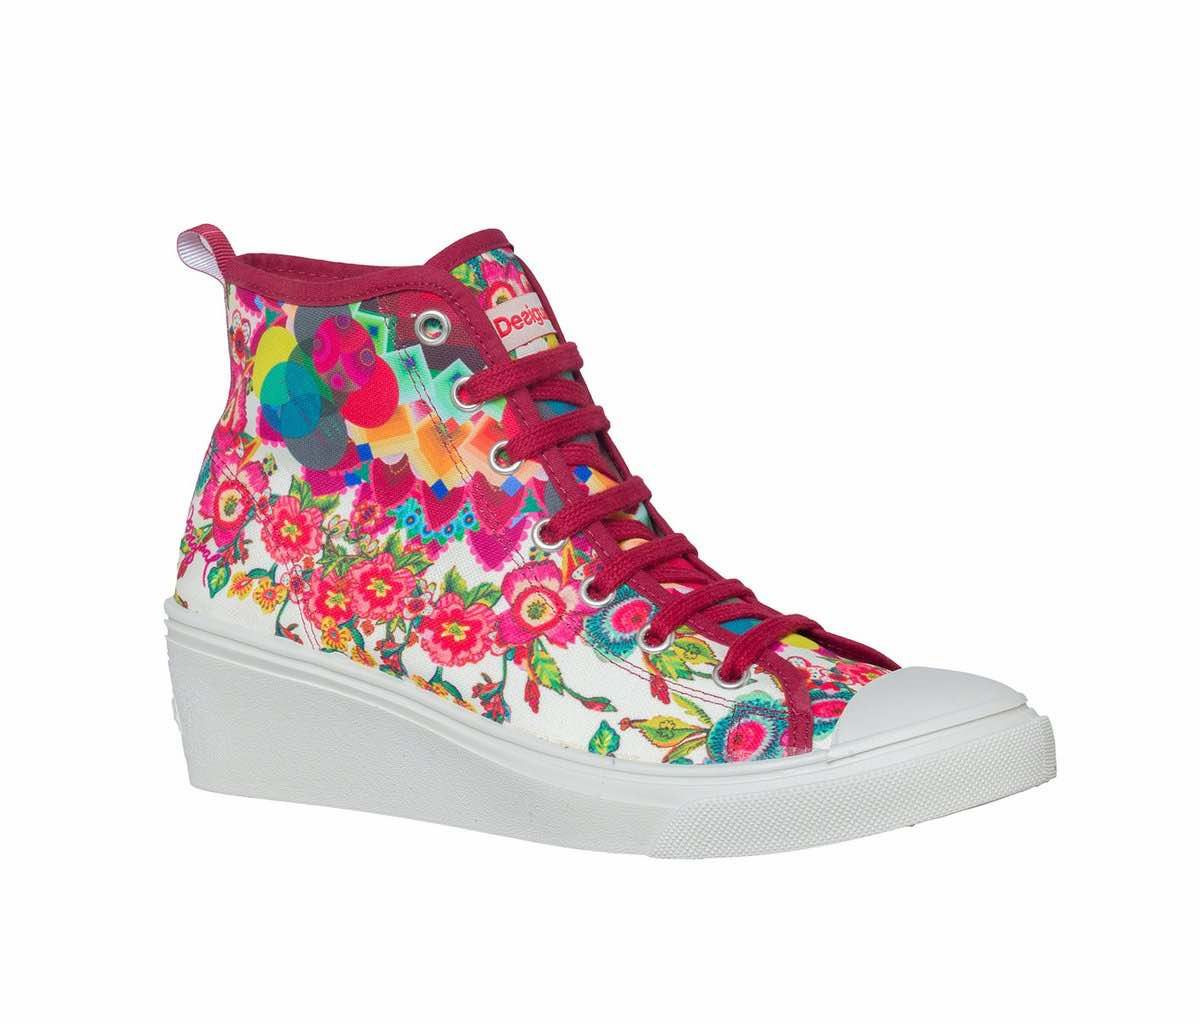 Desigual Funky Fall/Winter Textile Multicolor Women's shoes Trainers EY51872